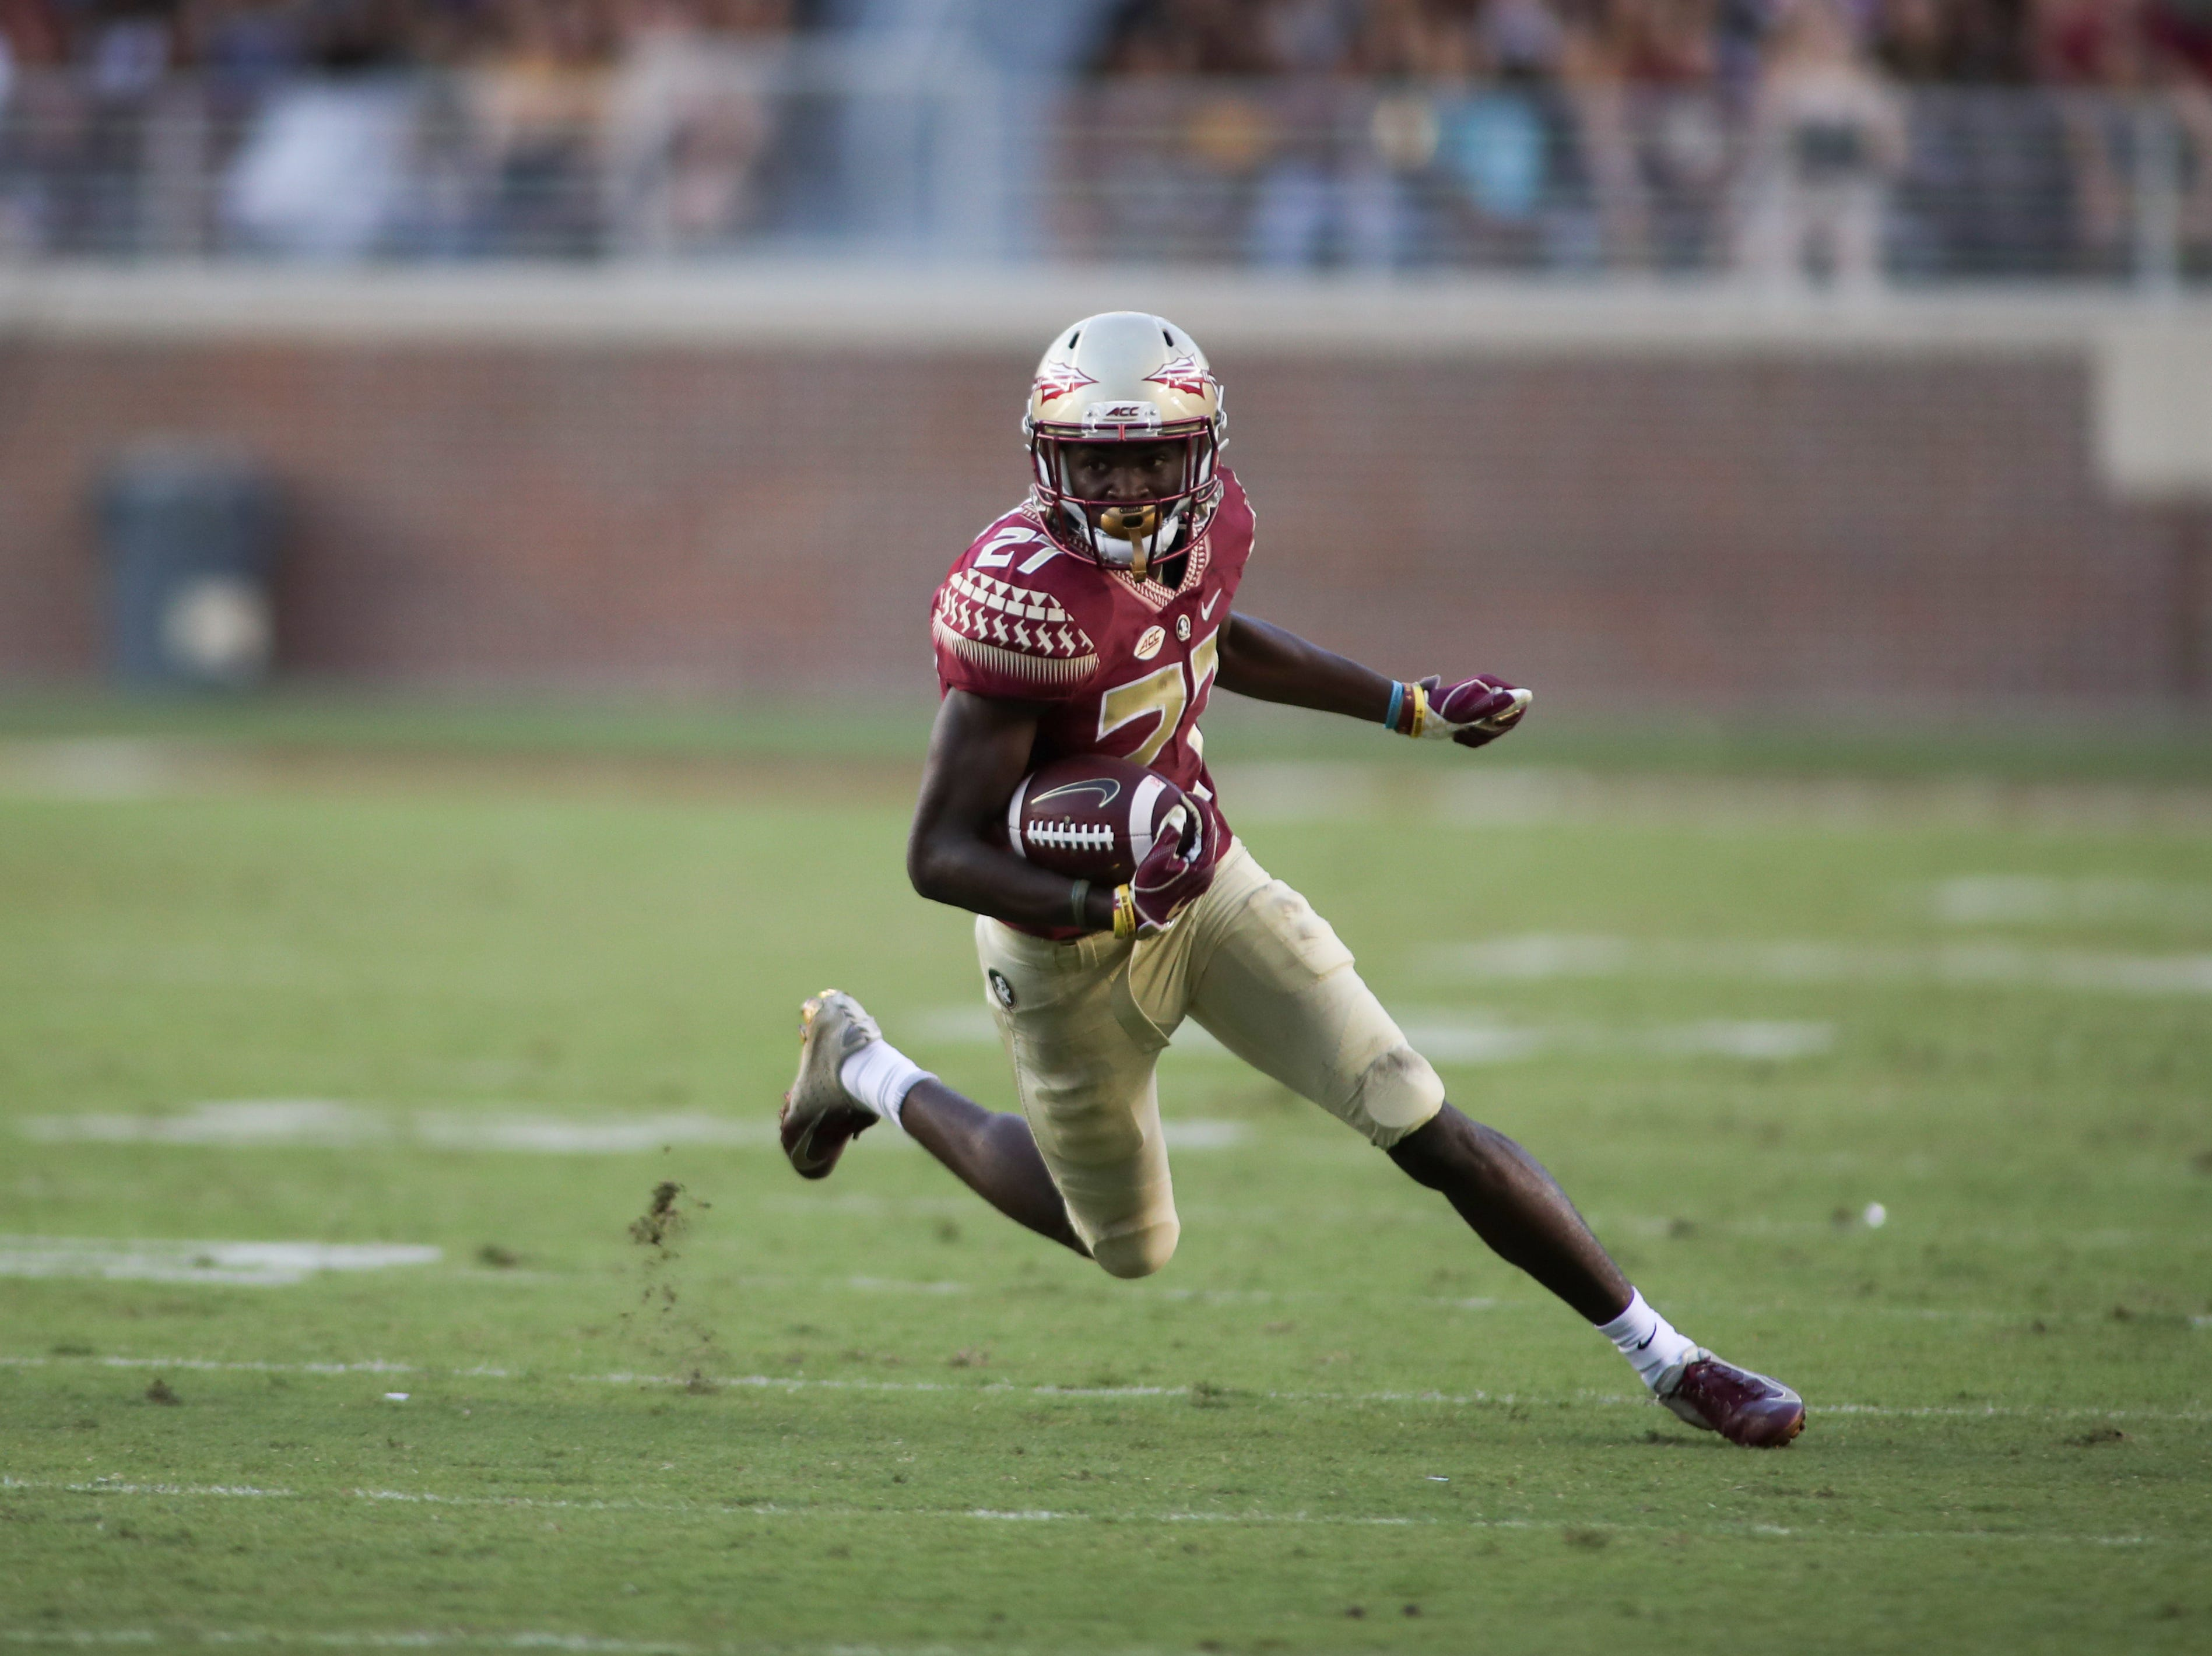 Florida State Seminoles wide receiver Ontaria Wilson (27) runs the ball during FSU's homecoming game against Wake Forest at Doak S. Campbell Stadium Saturday, Oct. 20, 2018.